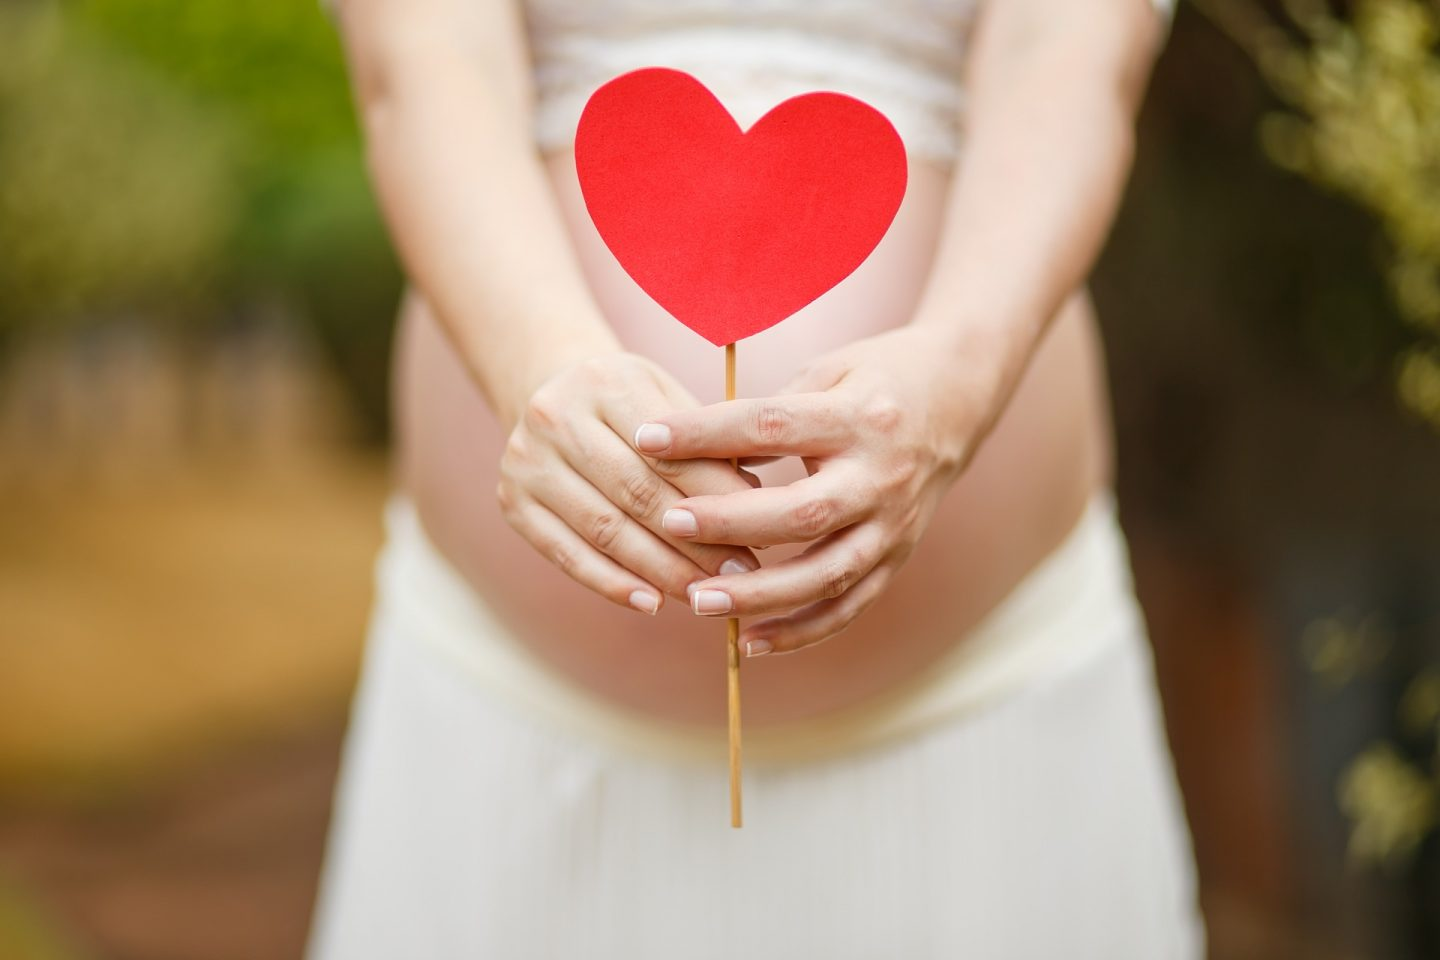 pregnant woman holding heart